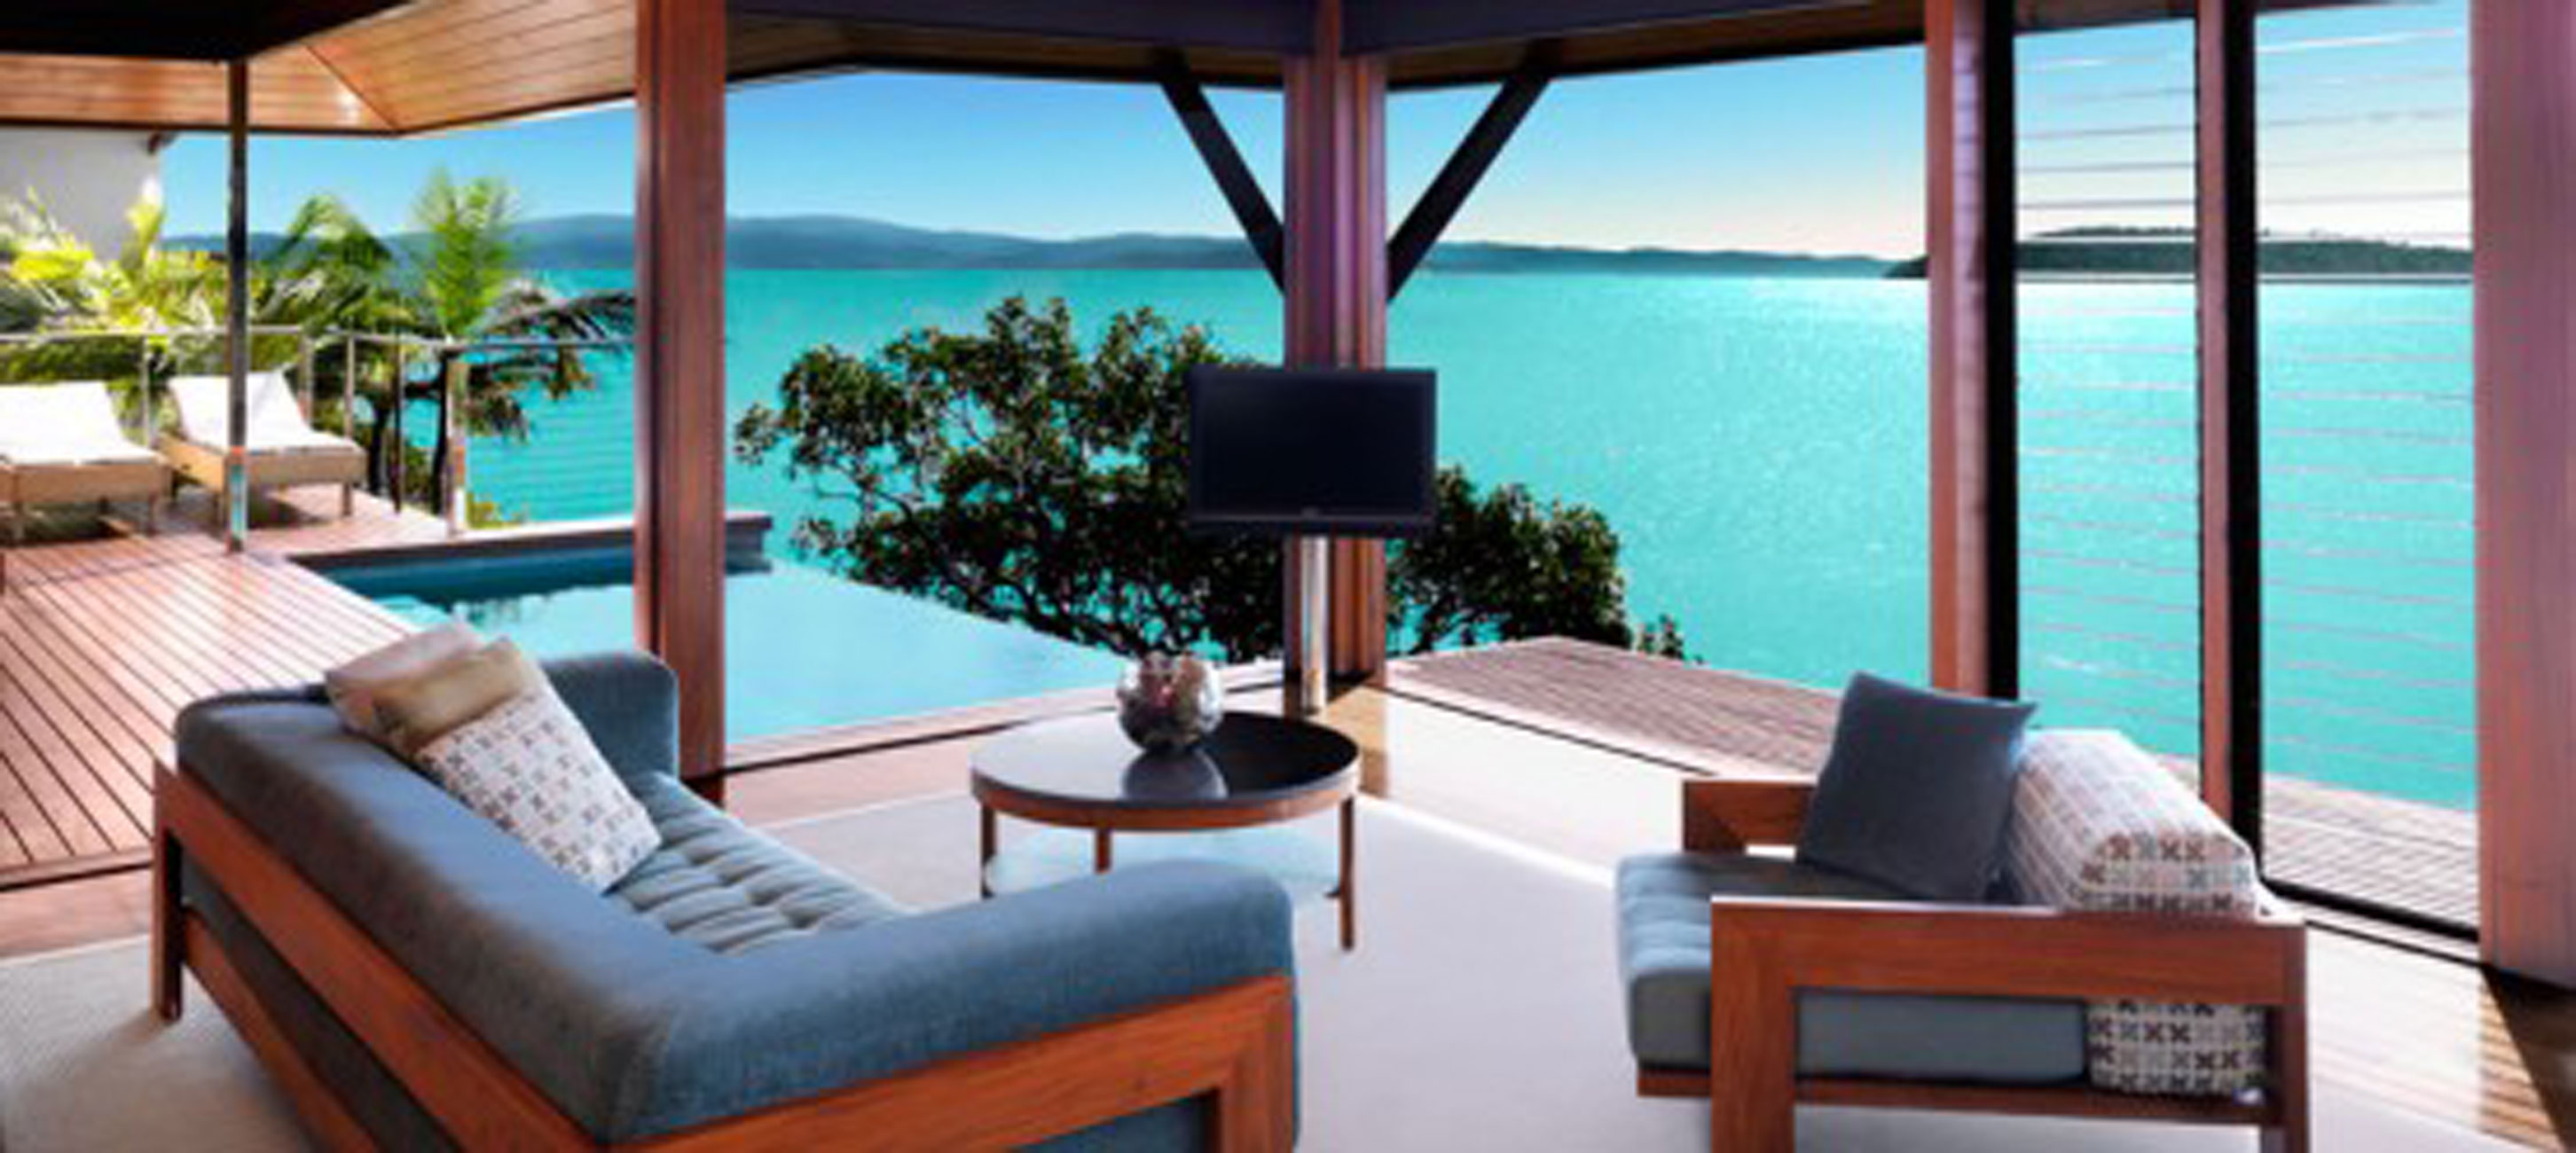 Qualia luxury villa in great barrier reef australia for Balcony barrier